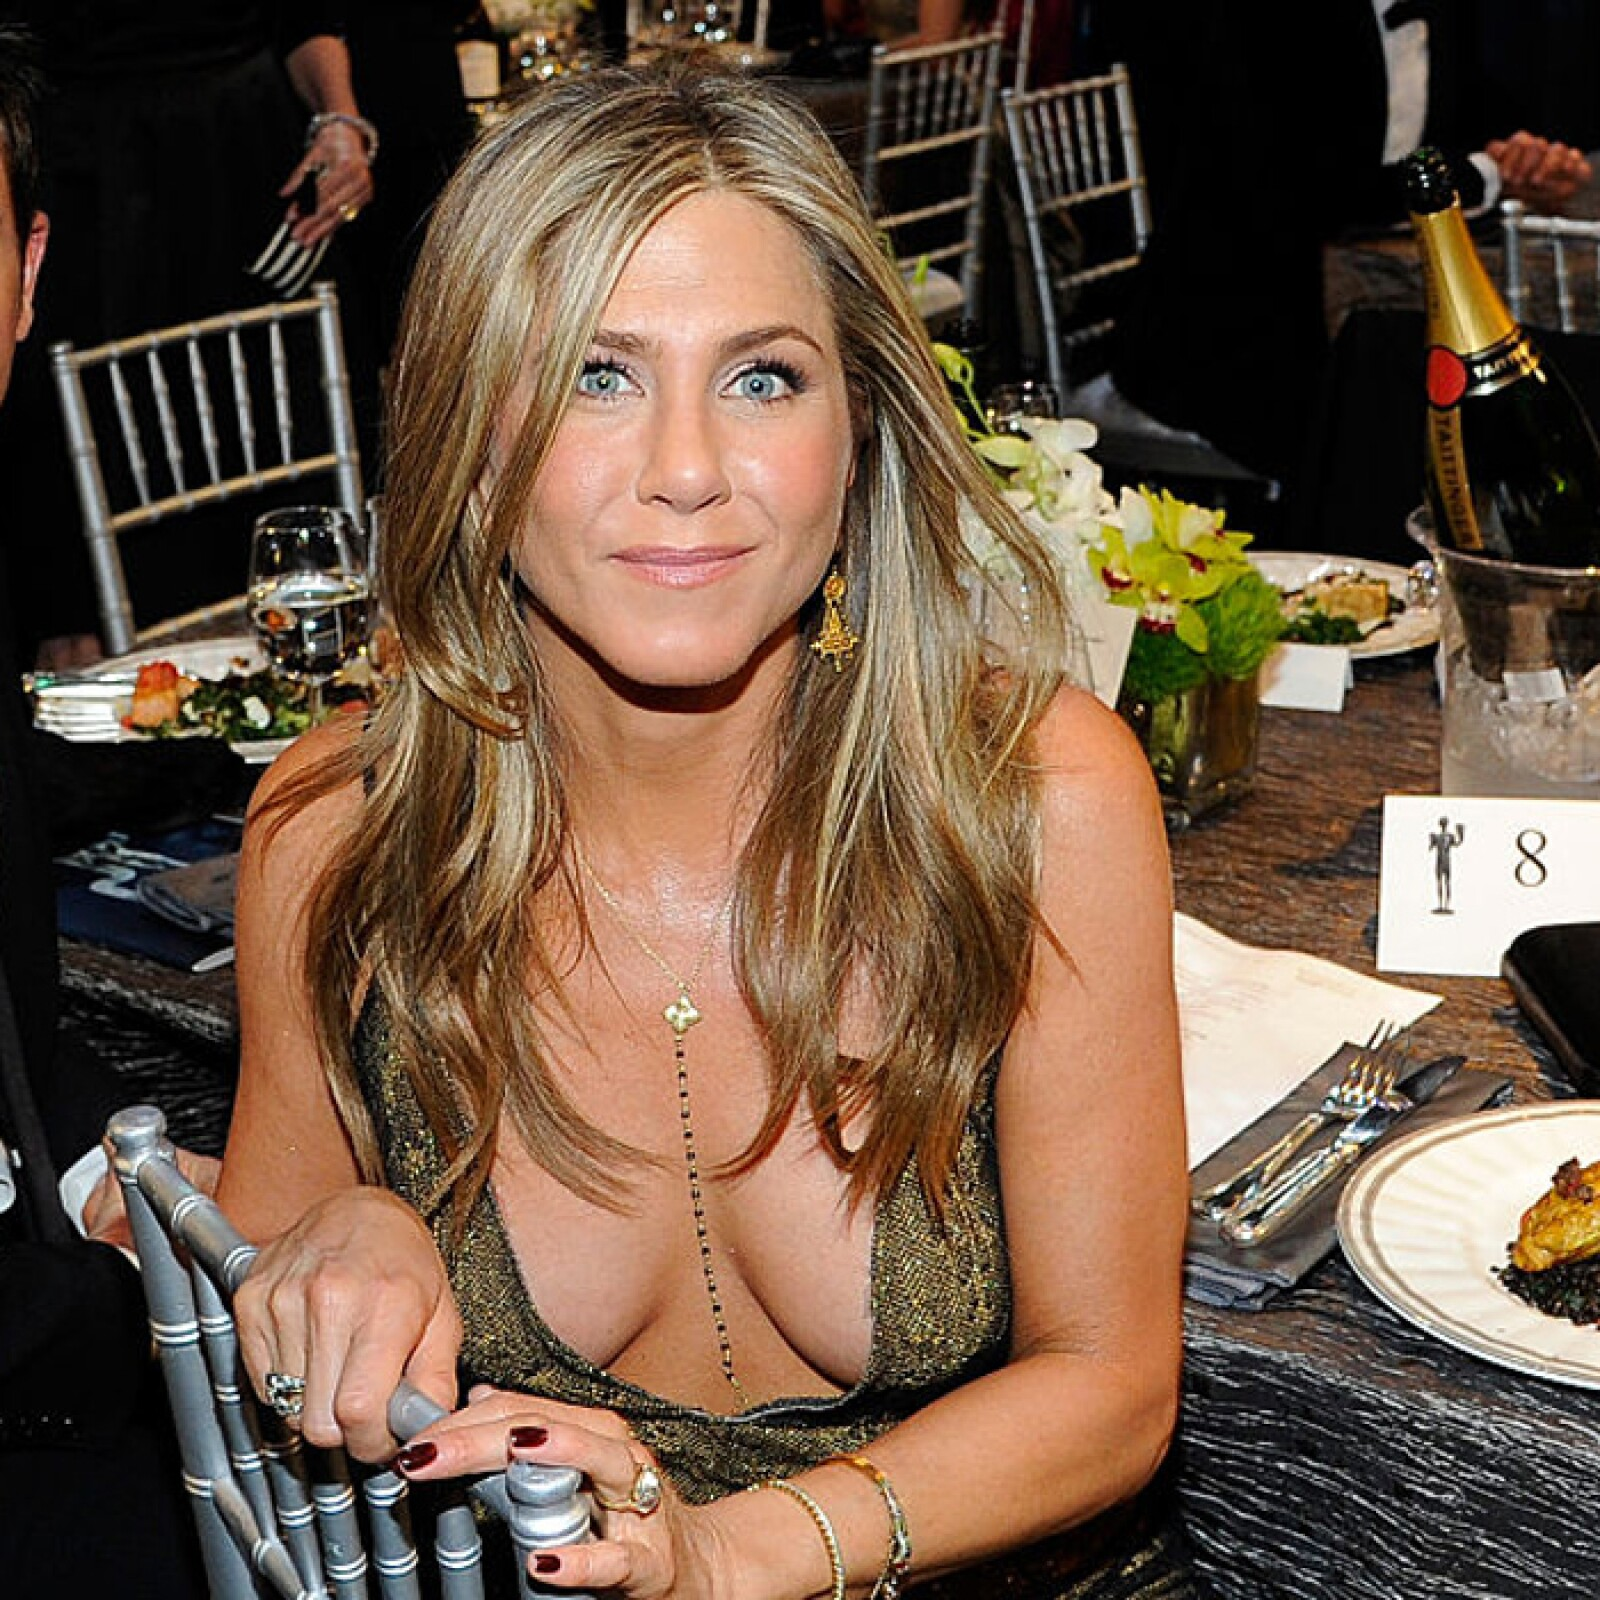 Jennifer aniston accidently exposes her nipples as she steps out in flimsy white vest